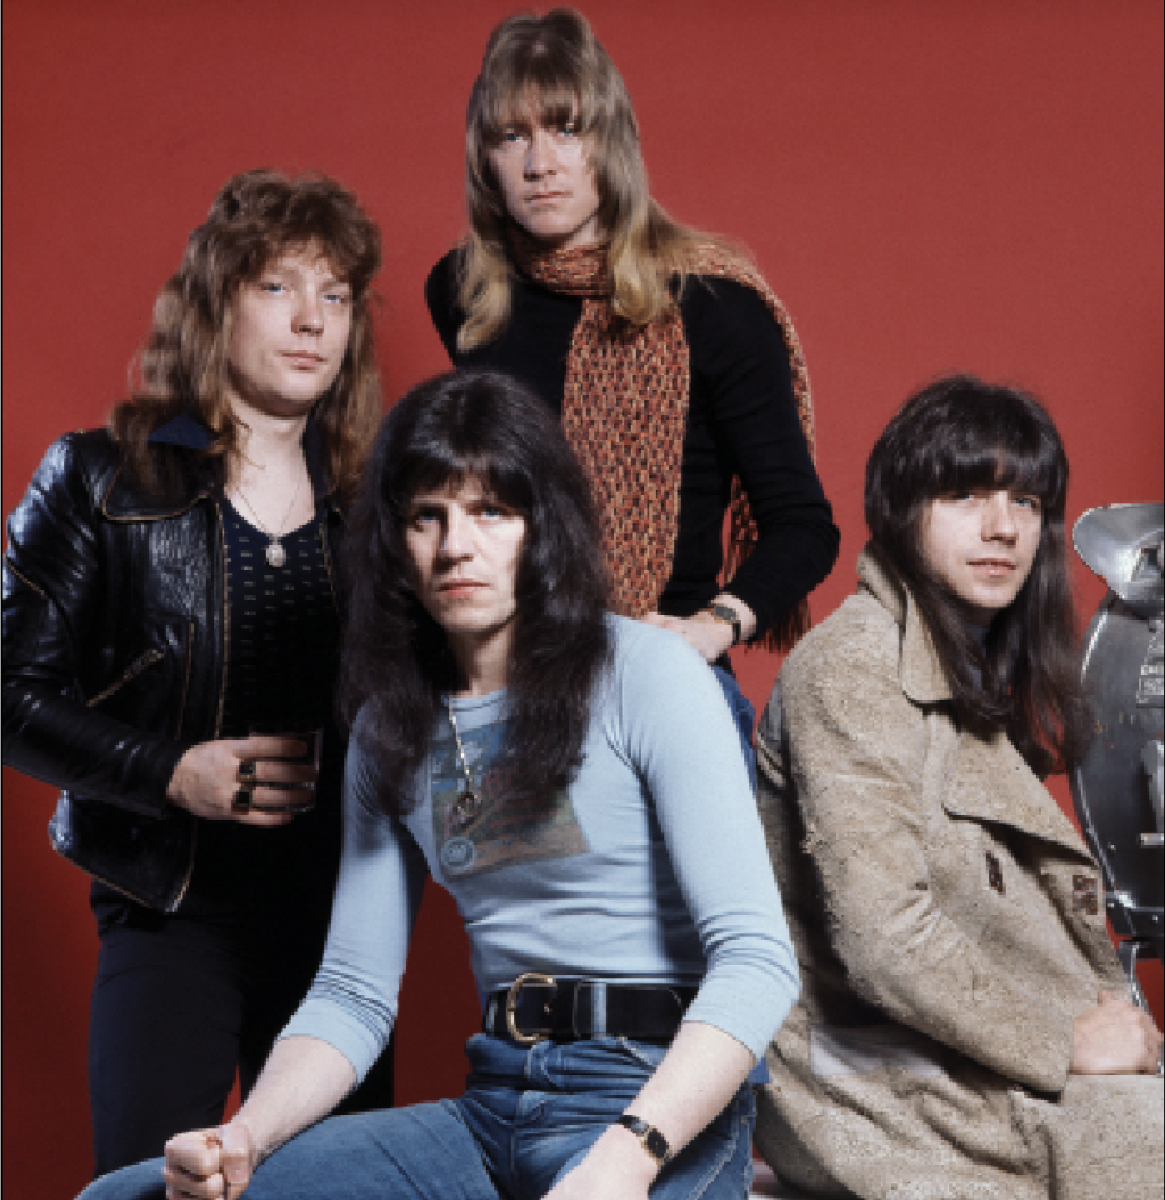 The classic Sweet lineup in London on January 13, 1976 (L-R): bassist Steve Priest (1948-2020), drummer Mick Tucker (1947-2002), singer Brian Connolly (1945-1997) and guitarist Andy Scott. Photo by Michael Putland/Getty Images